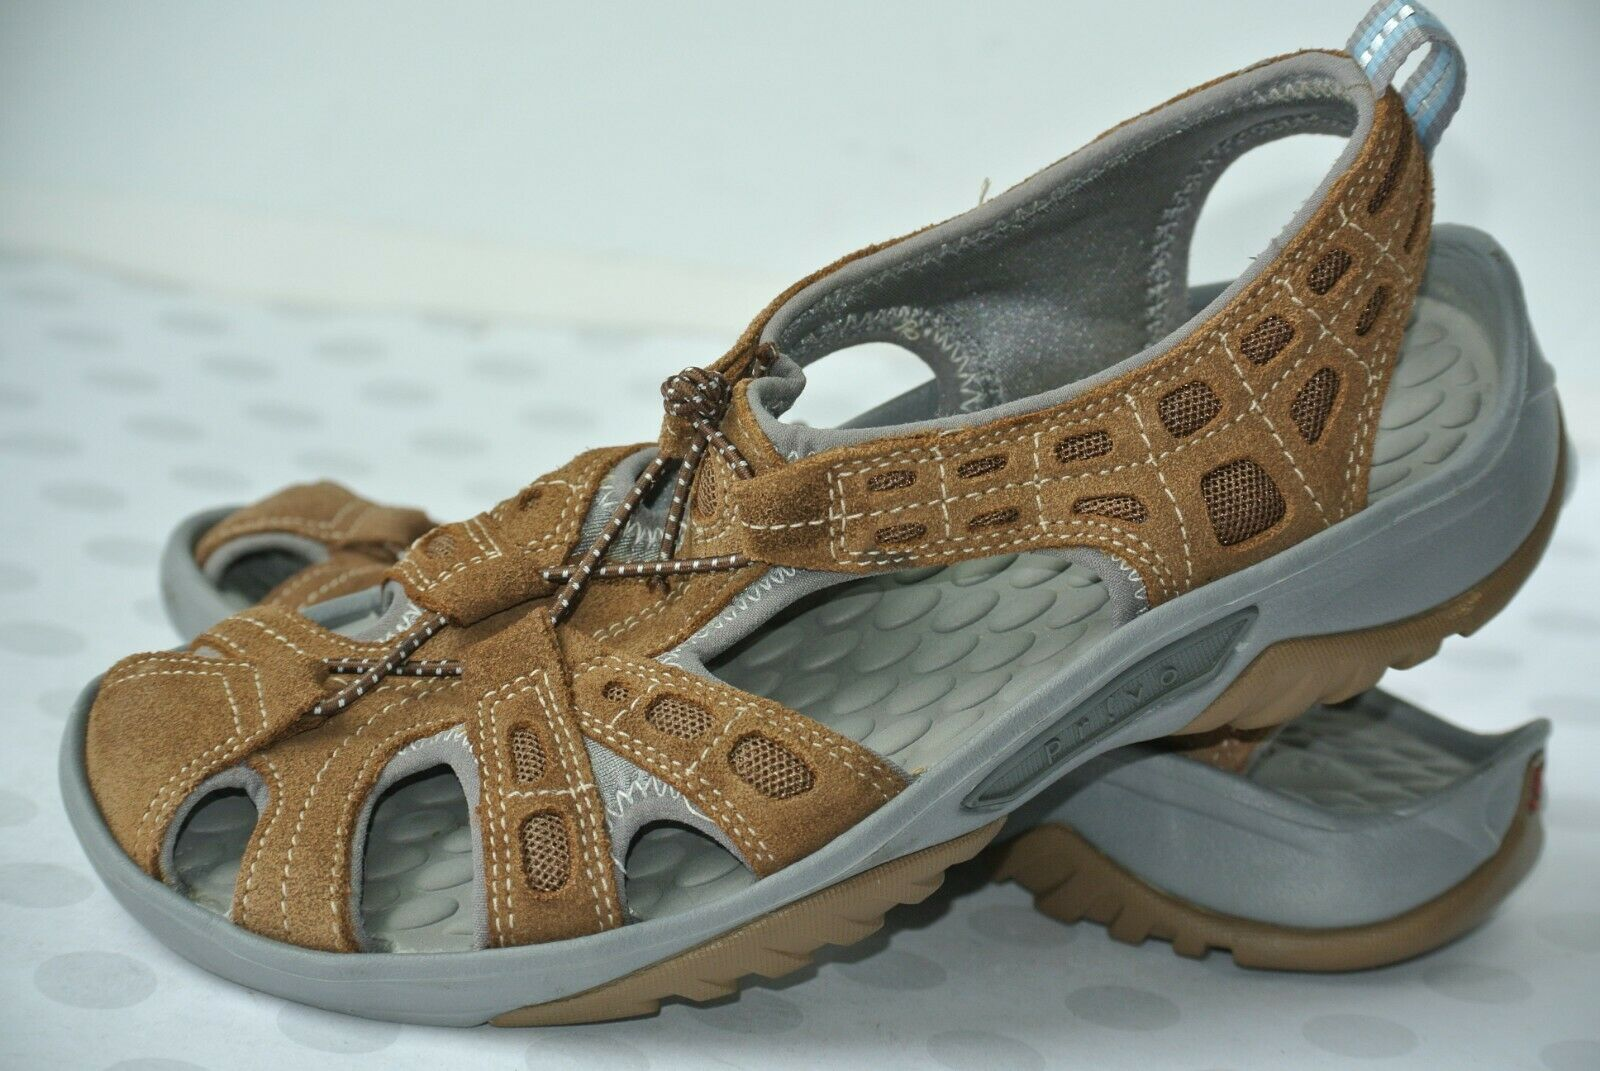 86d3e261001 Clarks Privo Womens Sz 6 M Brown Suede Leather Comfort Sport Sandals NICE!